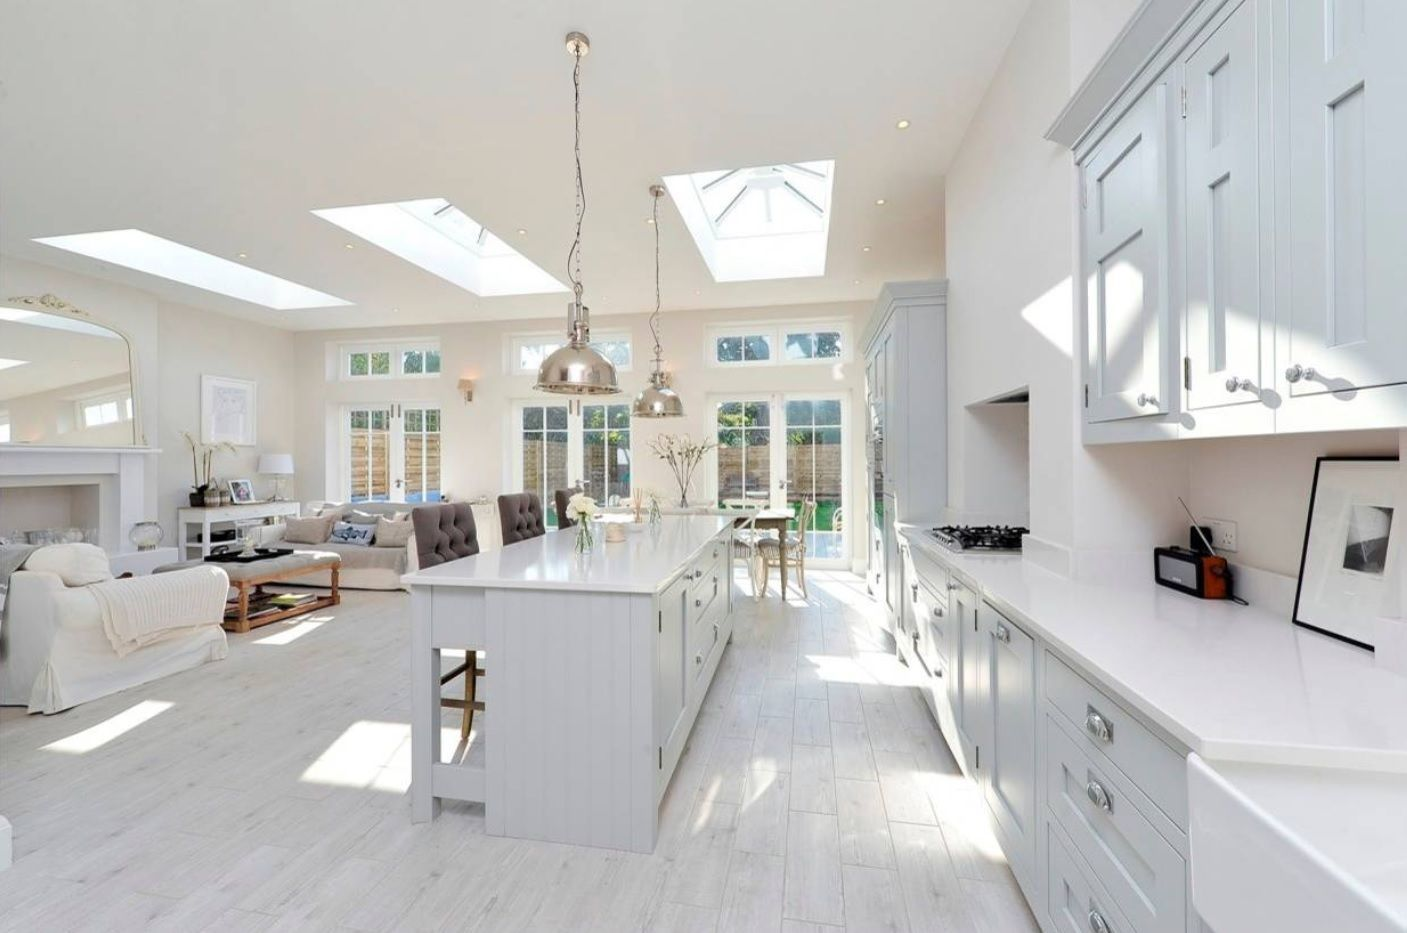 Common open space of the kitchen in contemporary Classic style interpratetion with white furniture